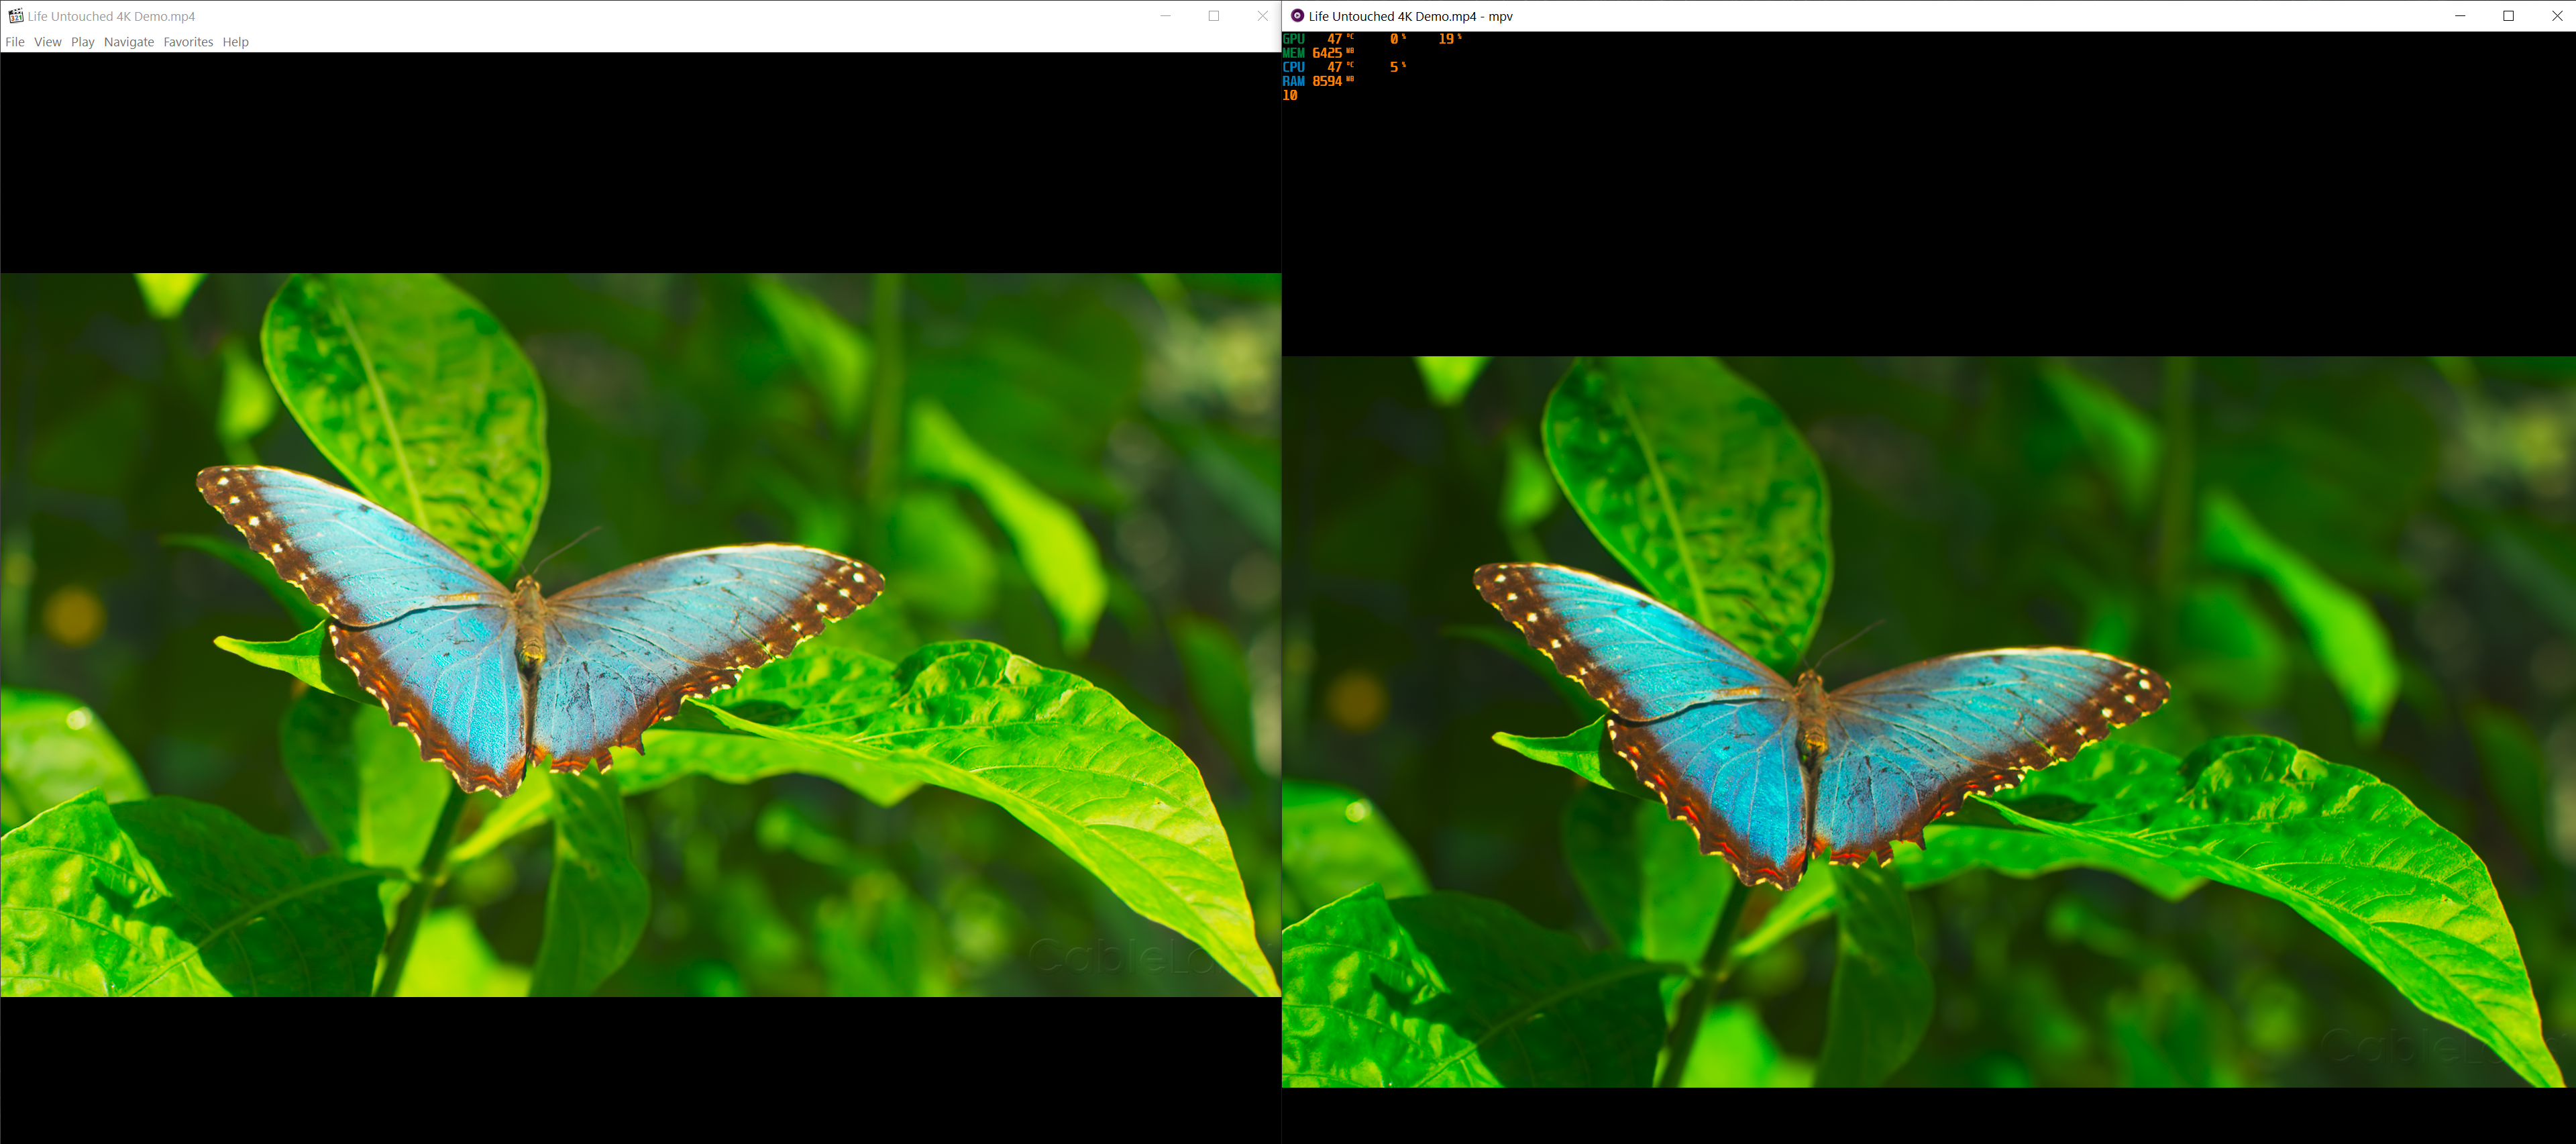 Why image looks so different between MPC-HC/potplayer and